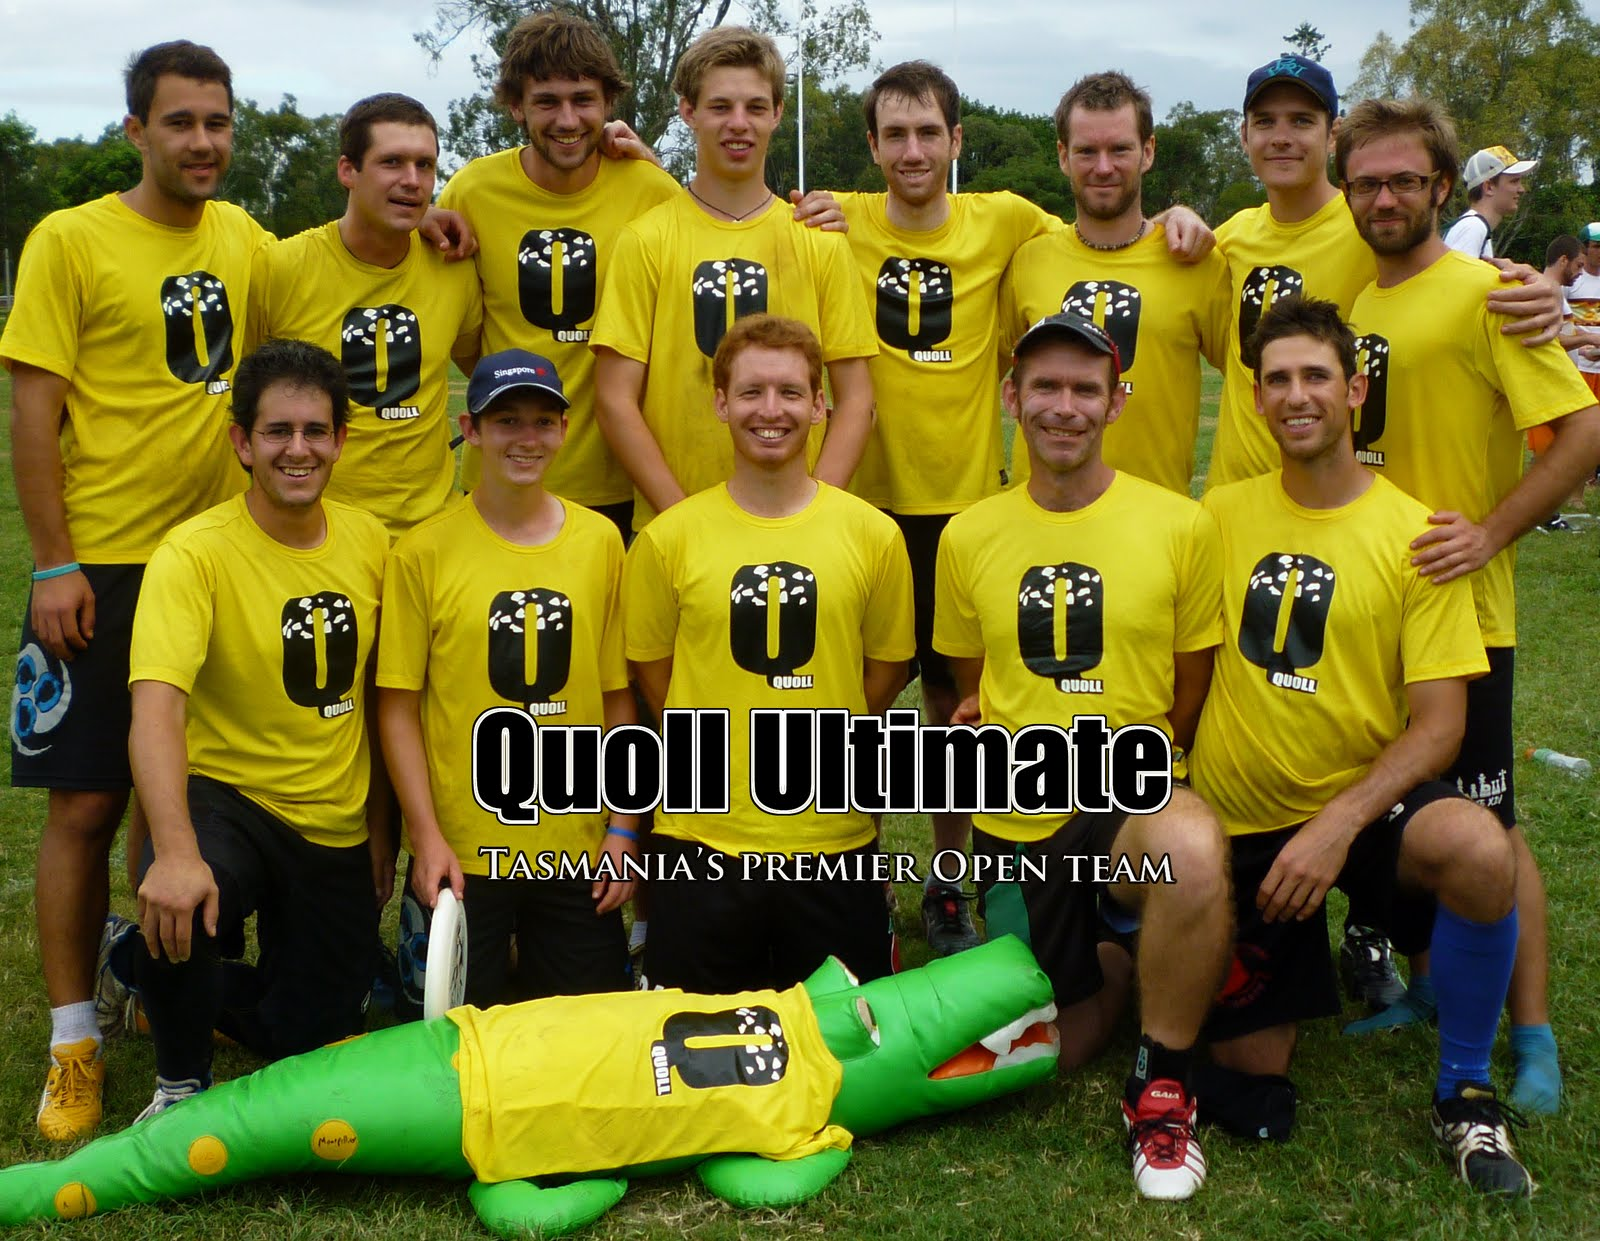 Quoll Ultimate